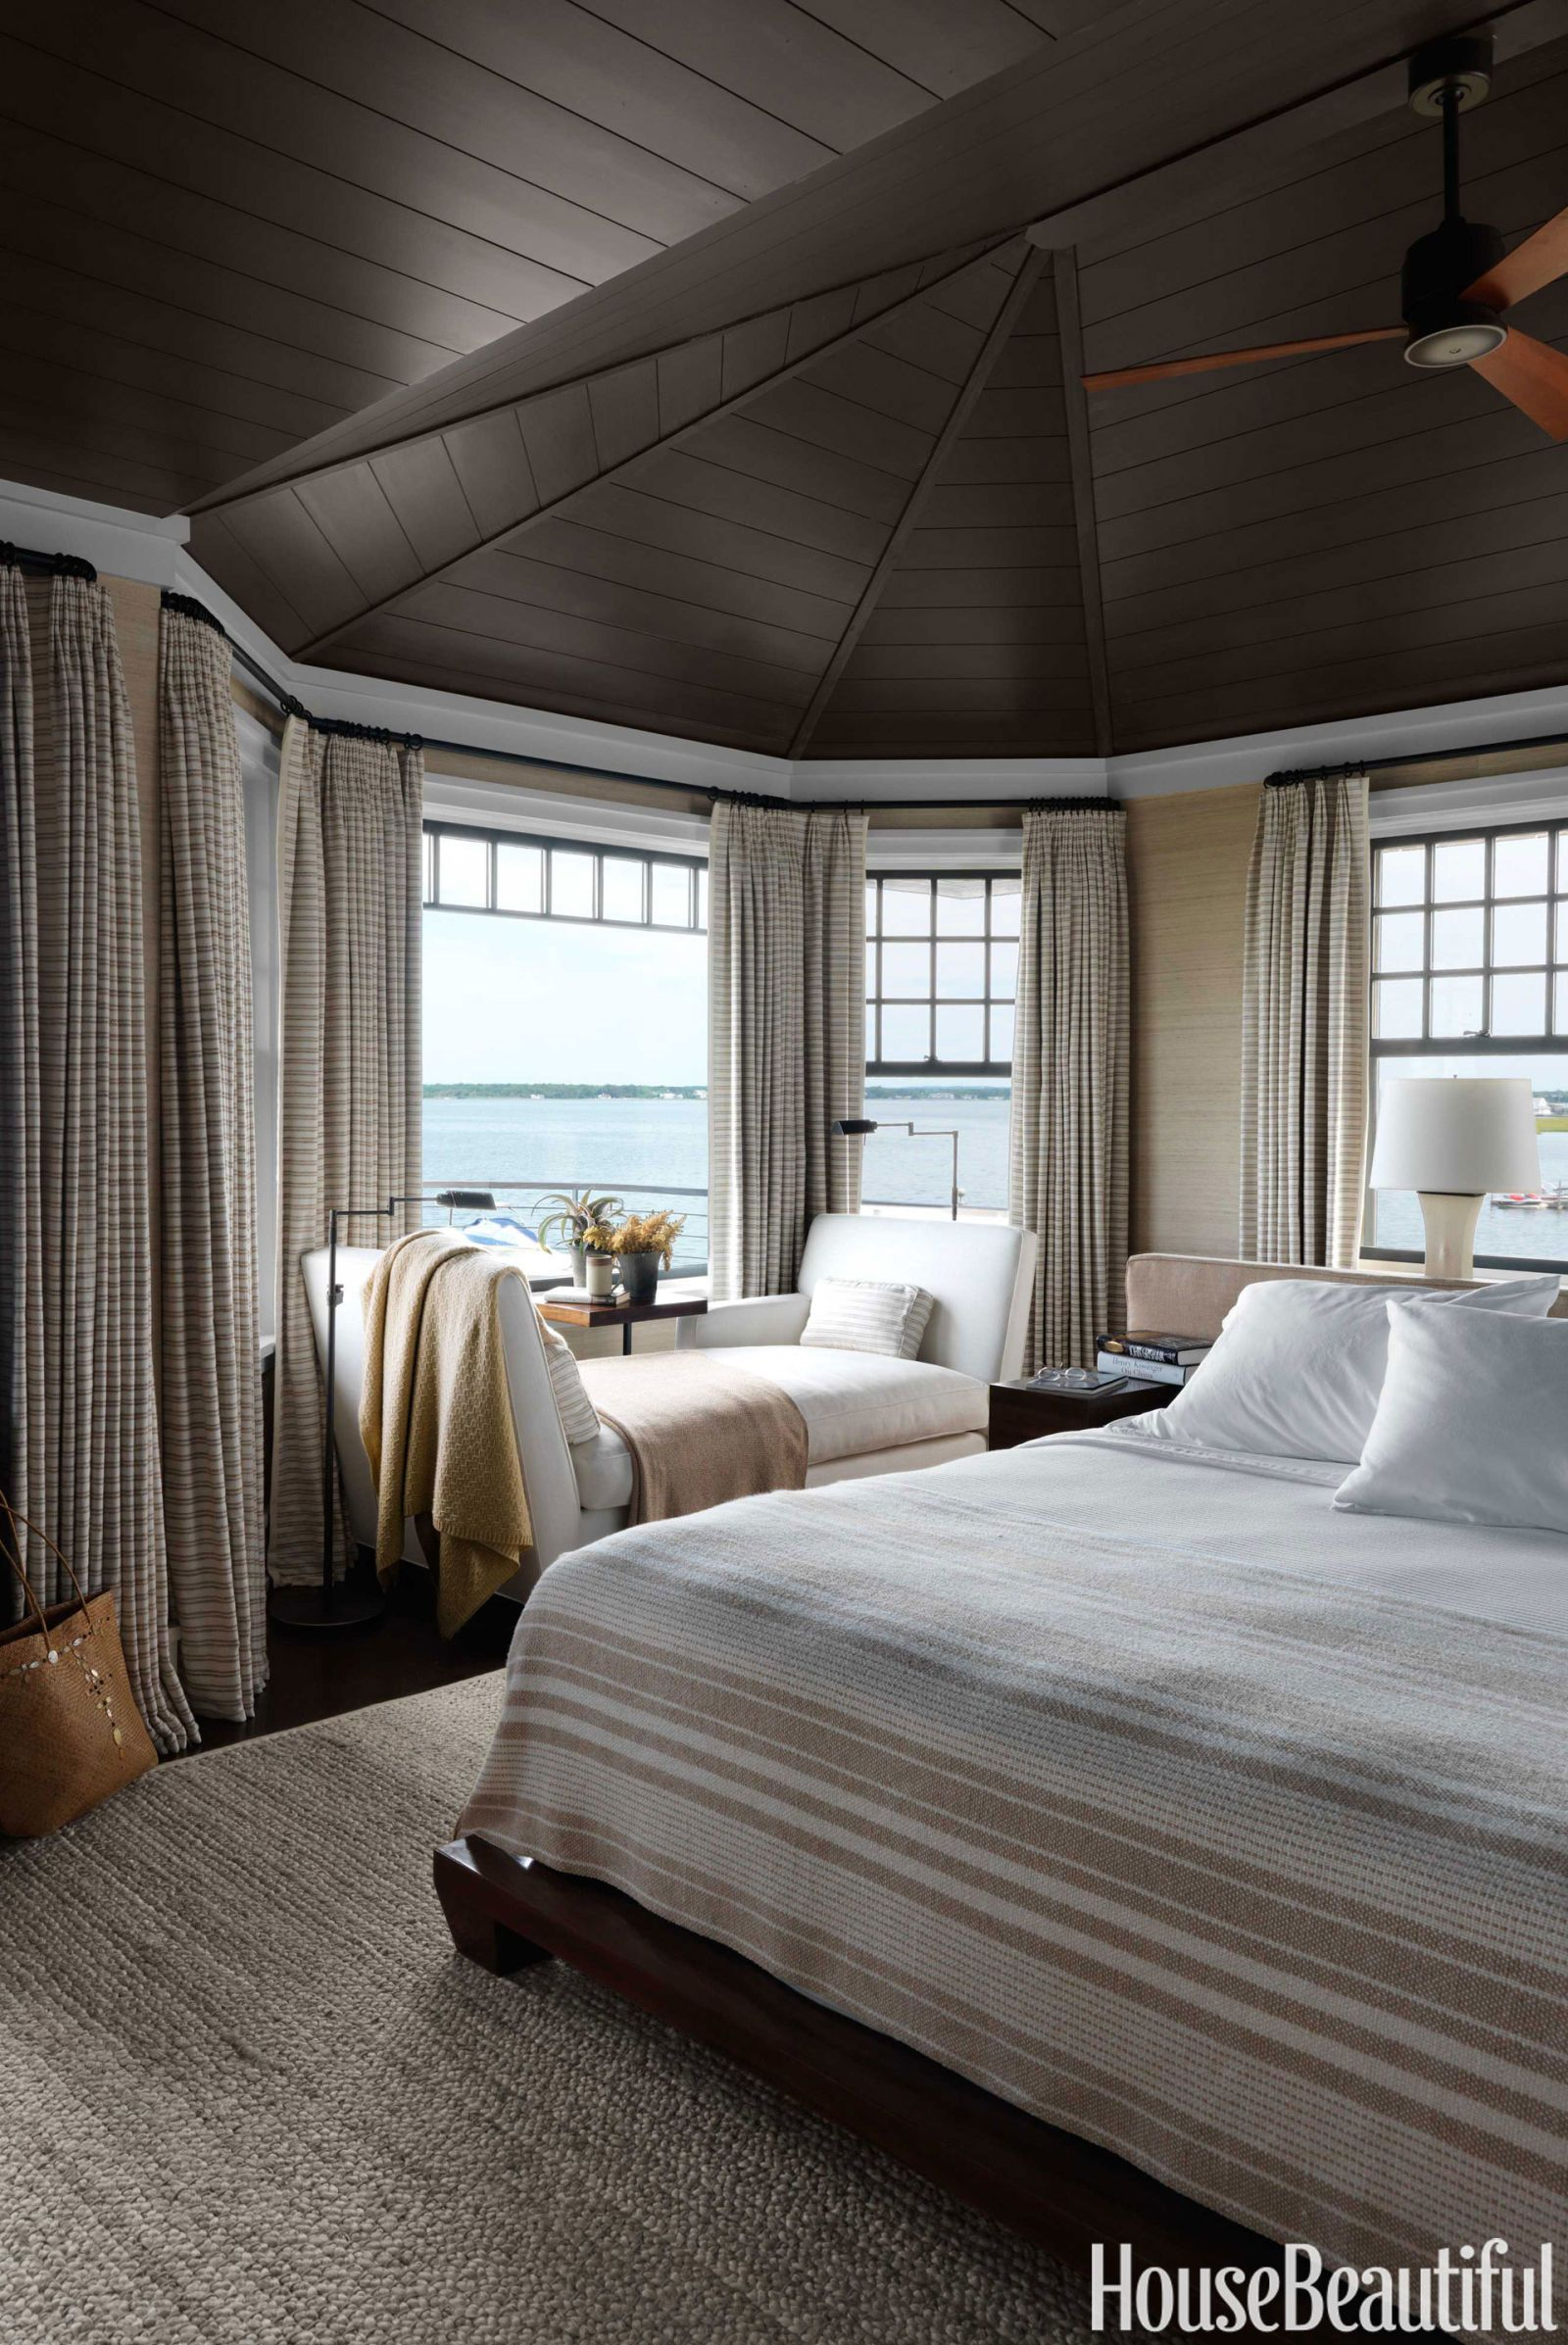 Walls In The Master Bedroom Are Covered Donghia S Silk Texture Ii And Ceiling Is Painted Benjamin Moore Regal Select Night Horizon To